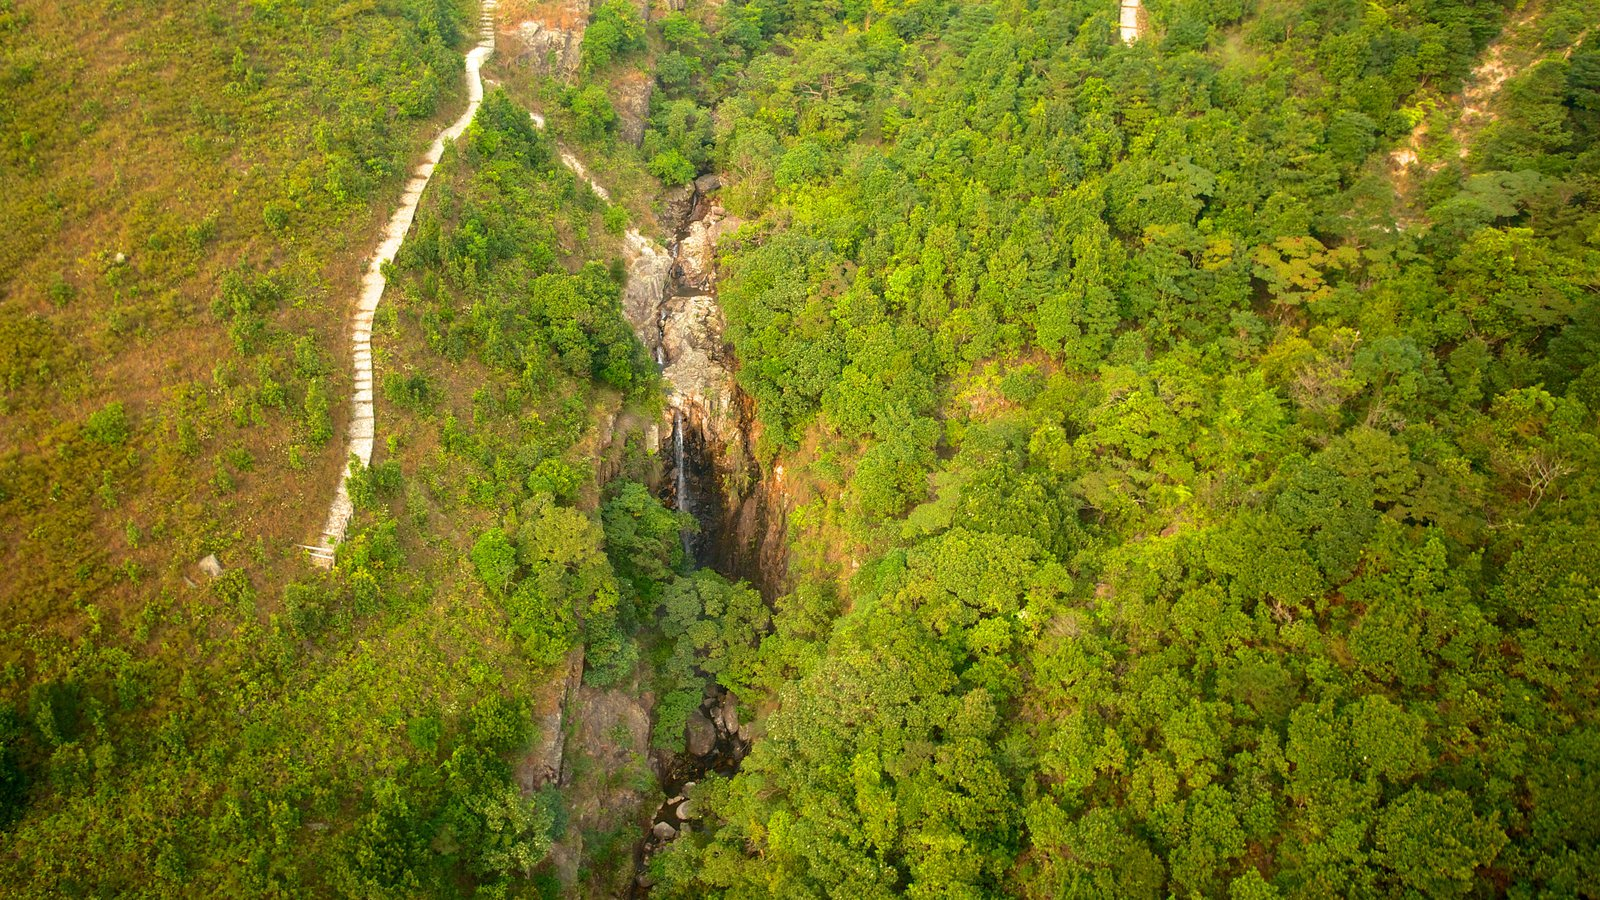 Ngong Ping 360 showing forests